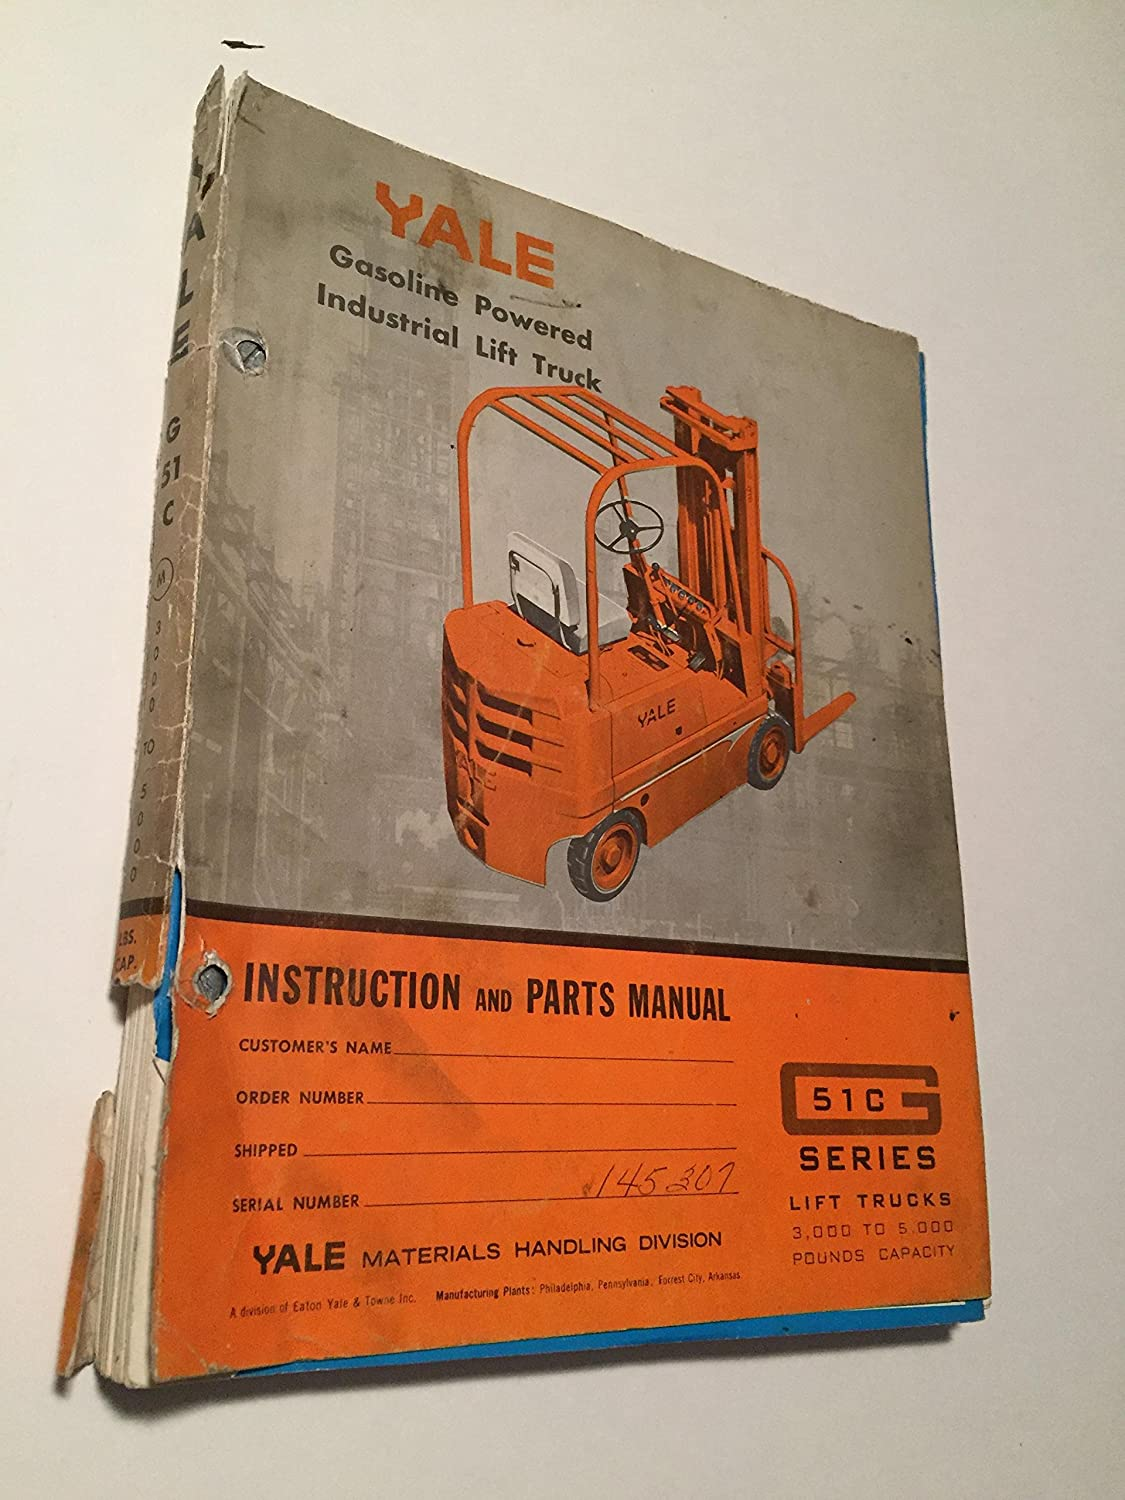 Vintage Yale G51c Gasoline Powered Lift Truck 3000 4000 5000 Pound Forklift Wiring Diagram On Telephone Box View Capacity Parts Manual 1963 030 040 050 Nfs Nrs Nft Nrt Industrial